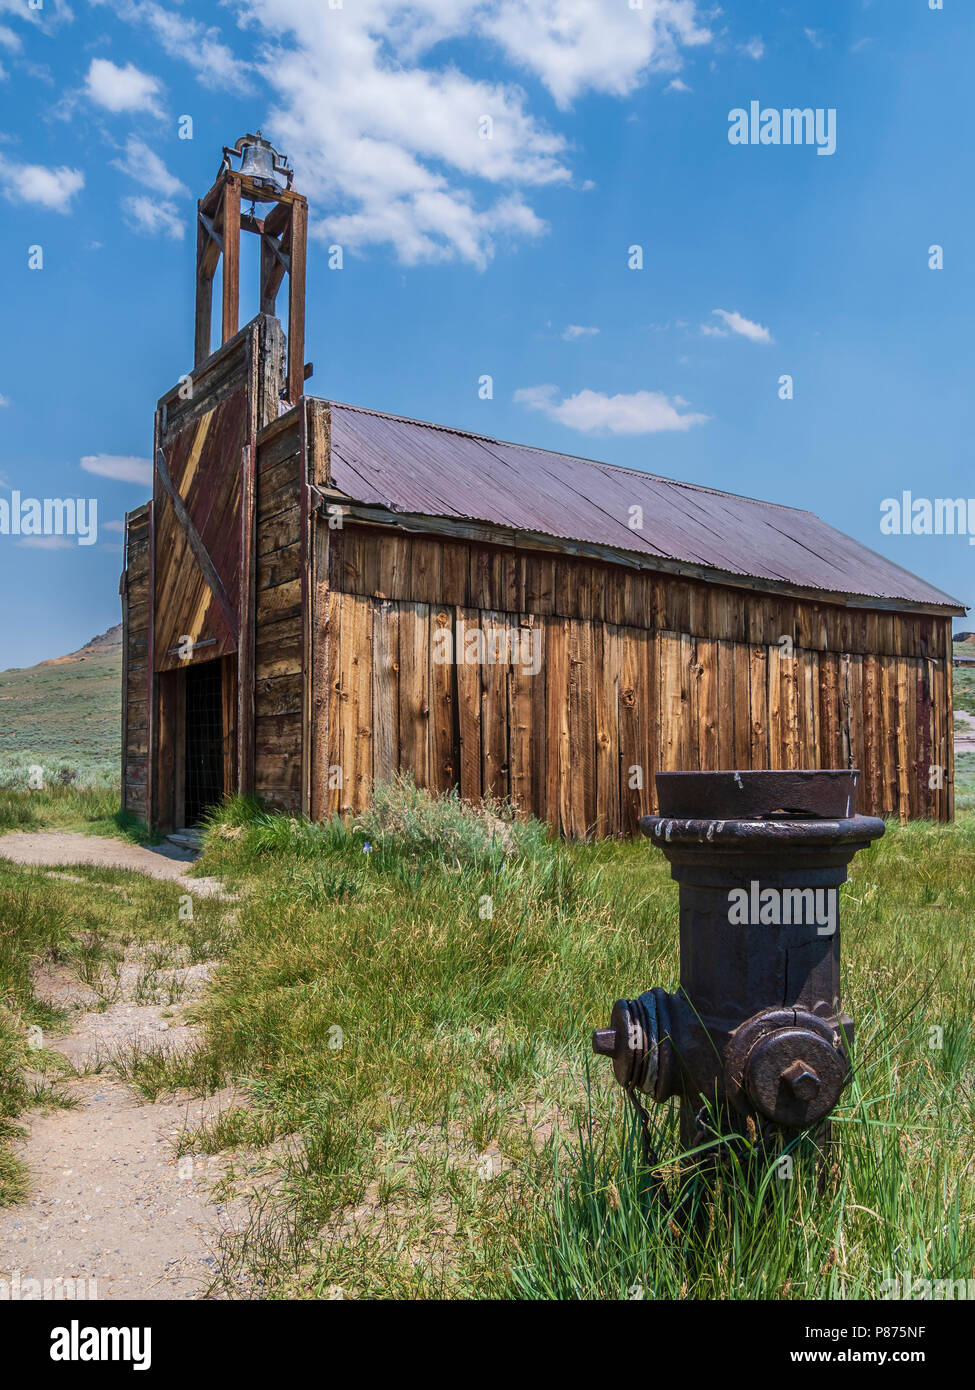 Fire hydrant near Firehouse, Bodie ghost town, Bodie State Historic Park, California. - Stock Image